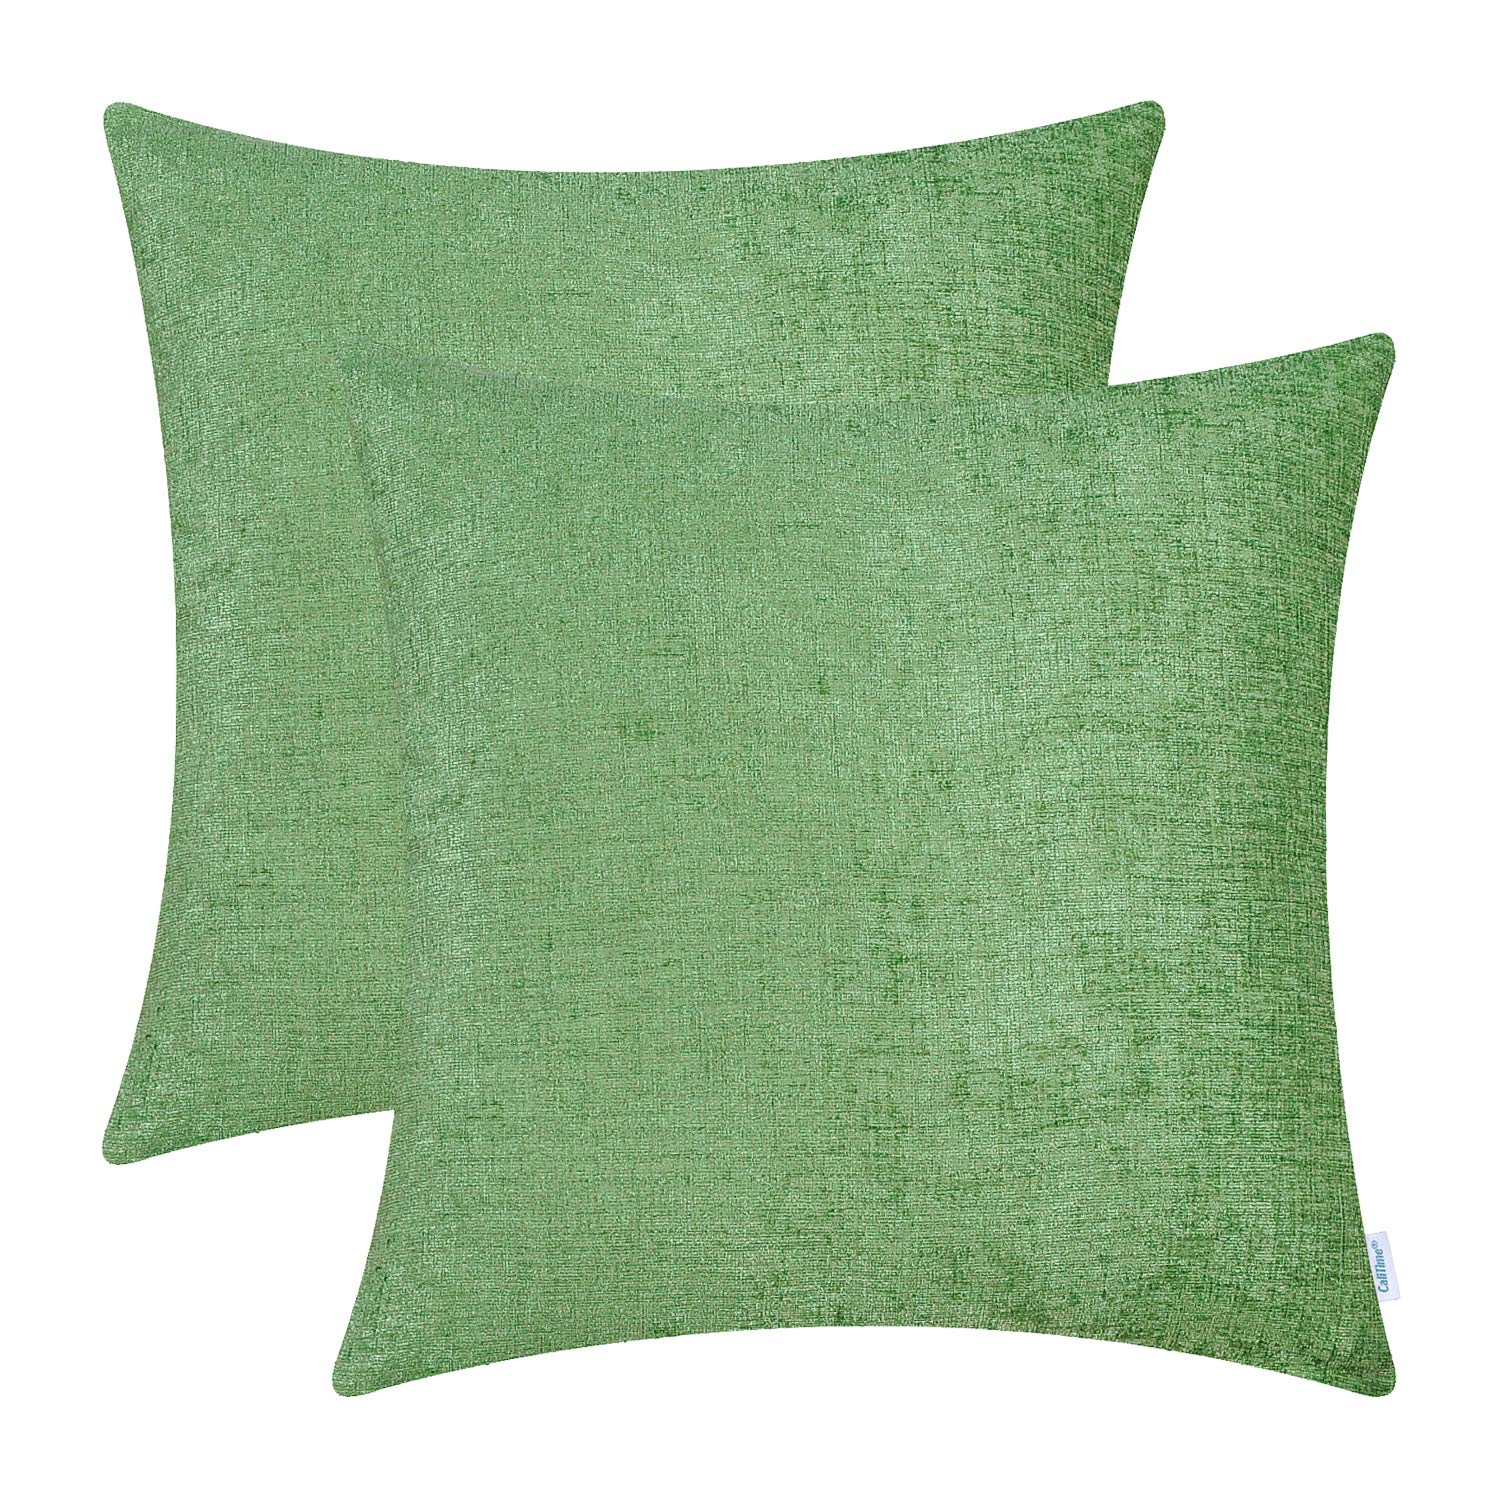 CaliTime Pack of 2 Cozy Throw Pillow Covers Cases for Couch Sofa Home Decoration Solid Dyed Soft Chenille 16 X 16 Inches Forest Green